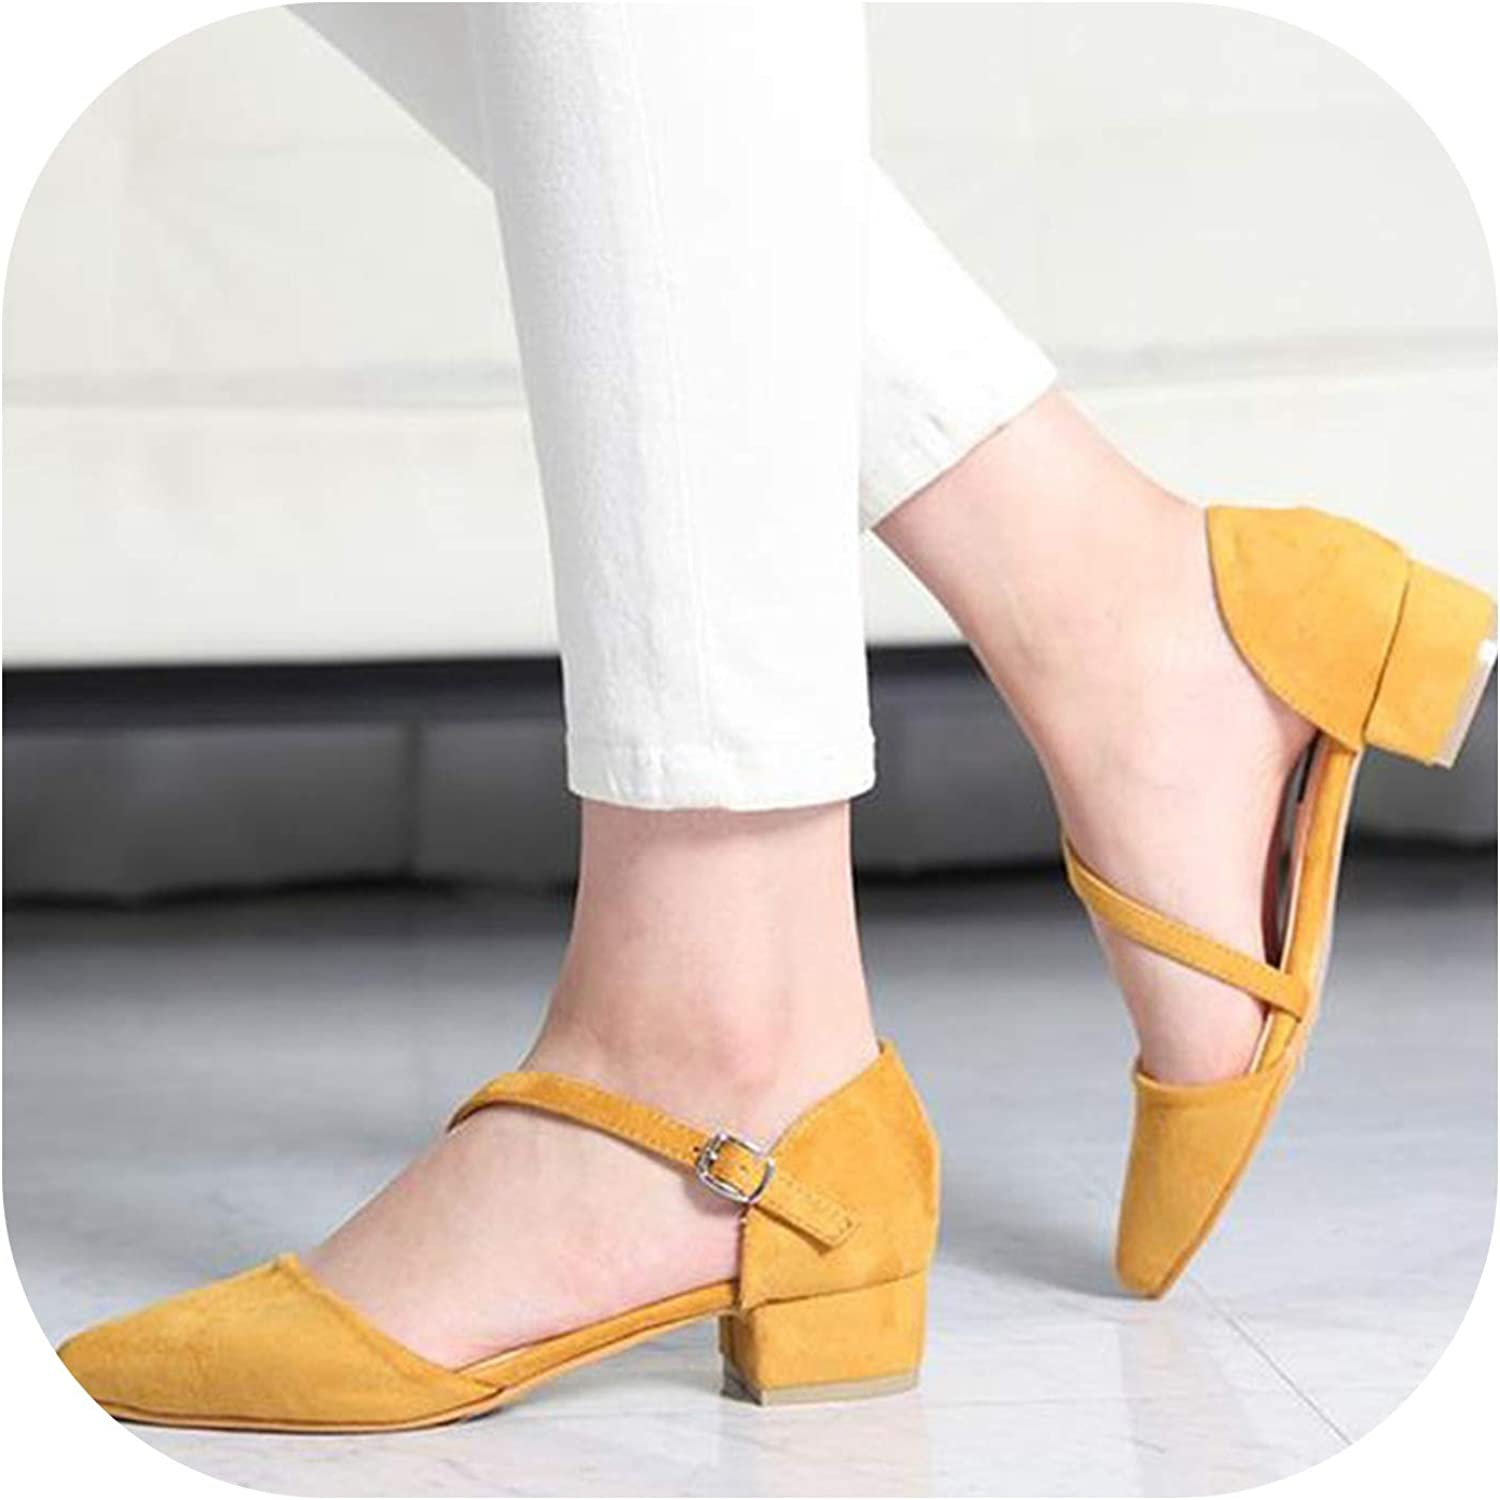 Alerghrg 3cm Low-Heeled Pointed Toe Pumps Footwear Buckle Sandals Yellow Black Khaki Wine Red d1038